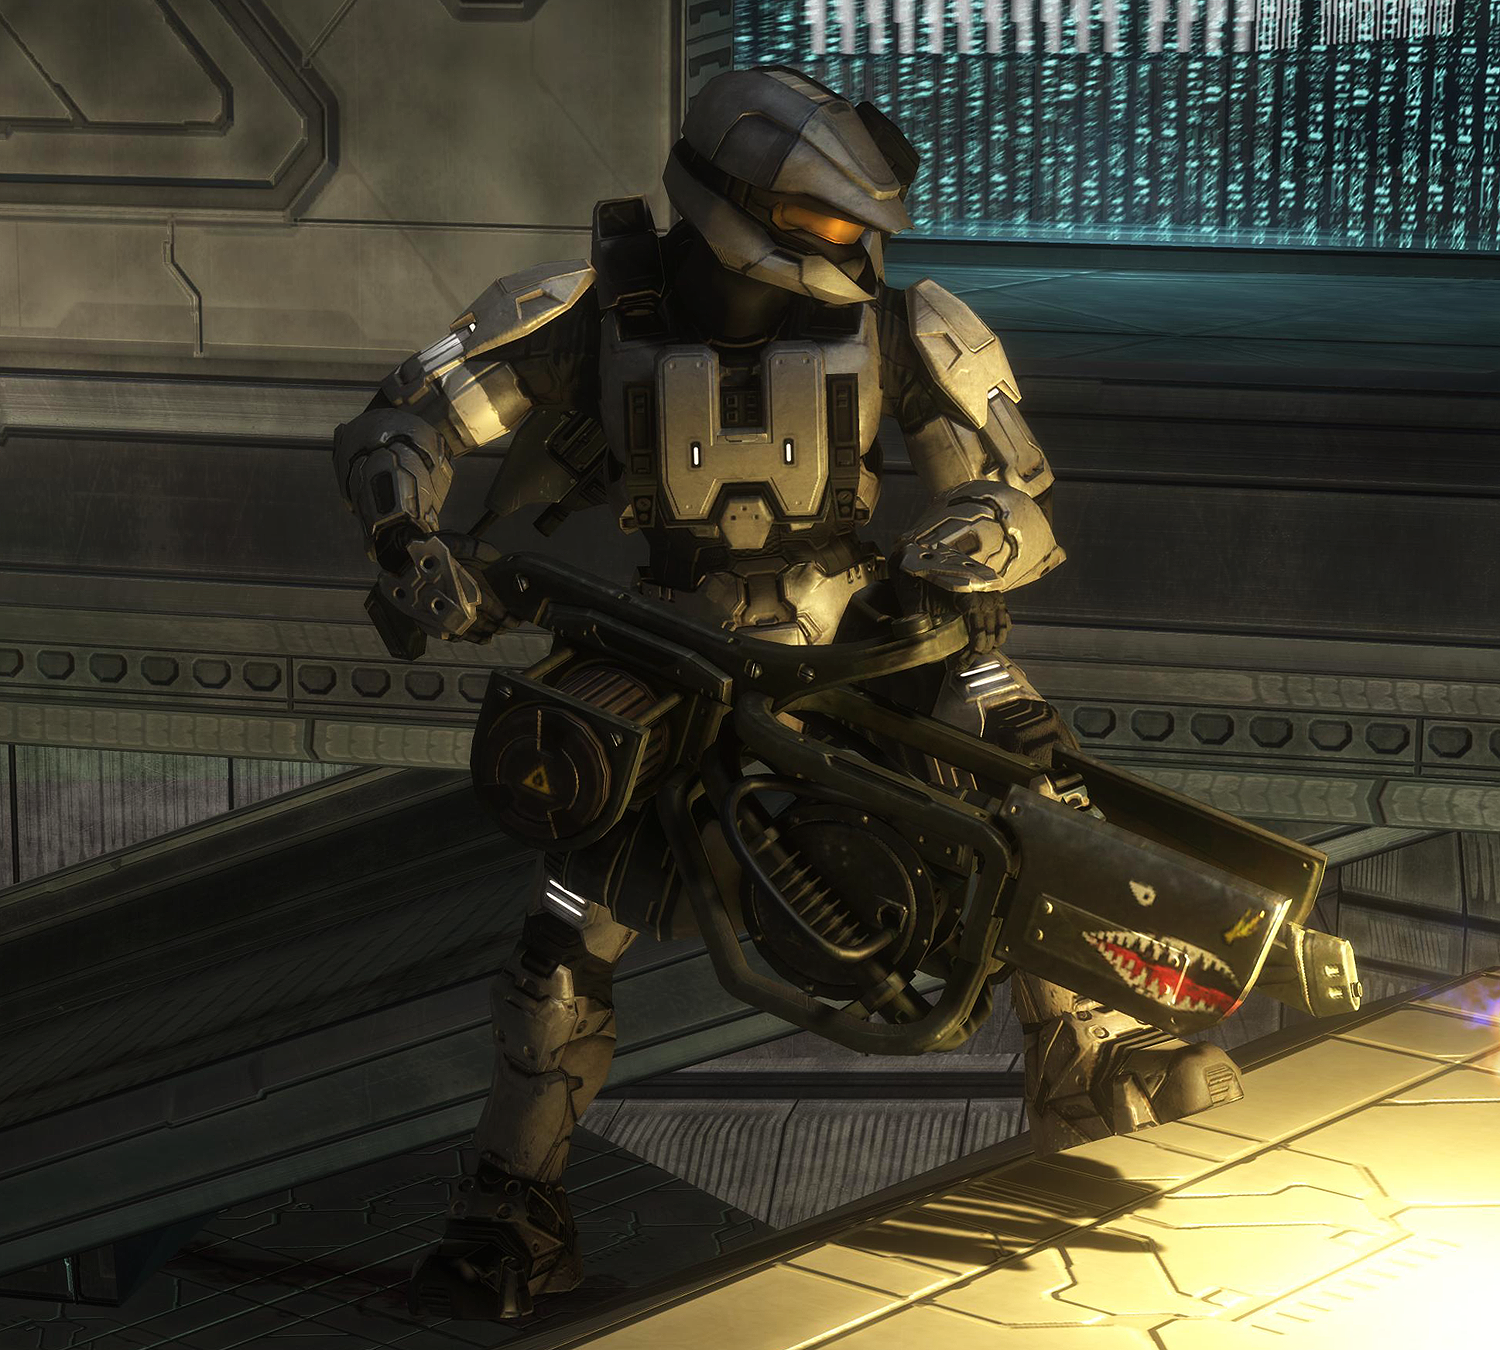 Halo Live Wallpaper: Scout Armor With Flamethrower By Keablr On DeviantArt